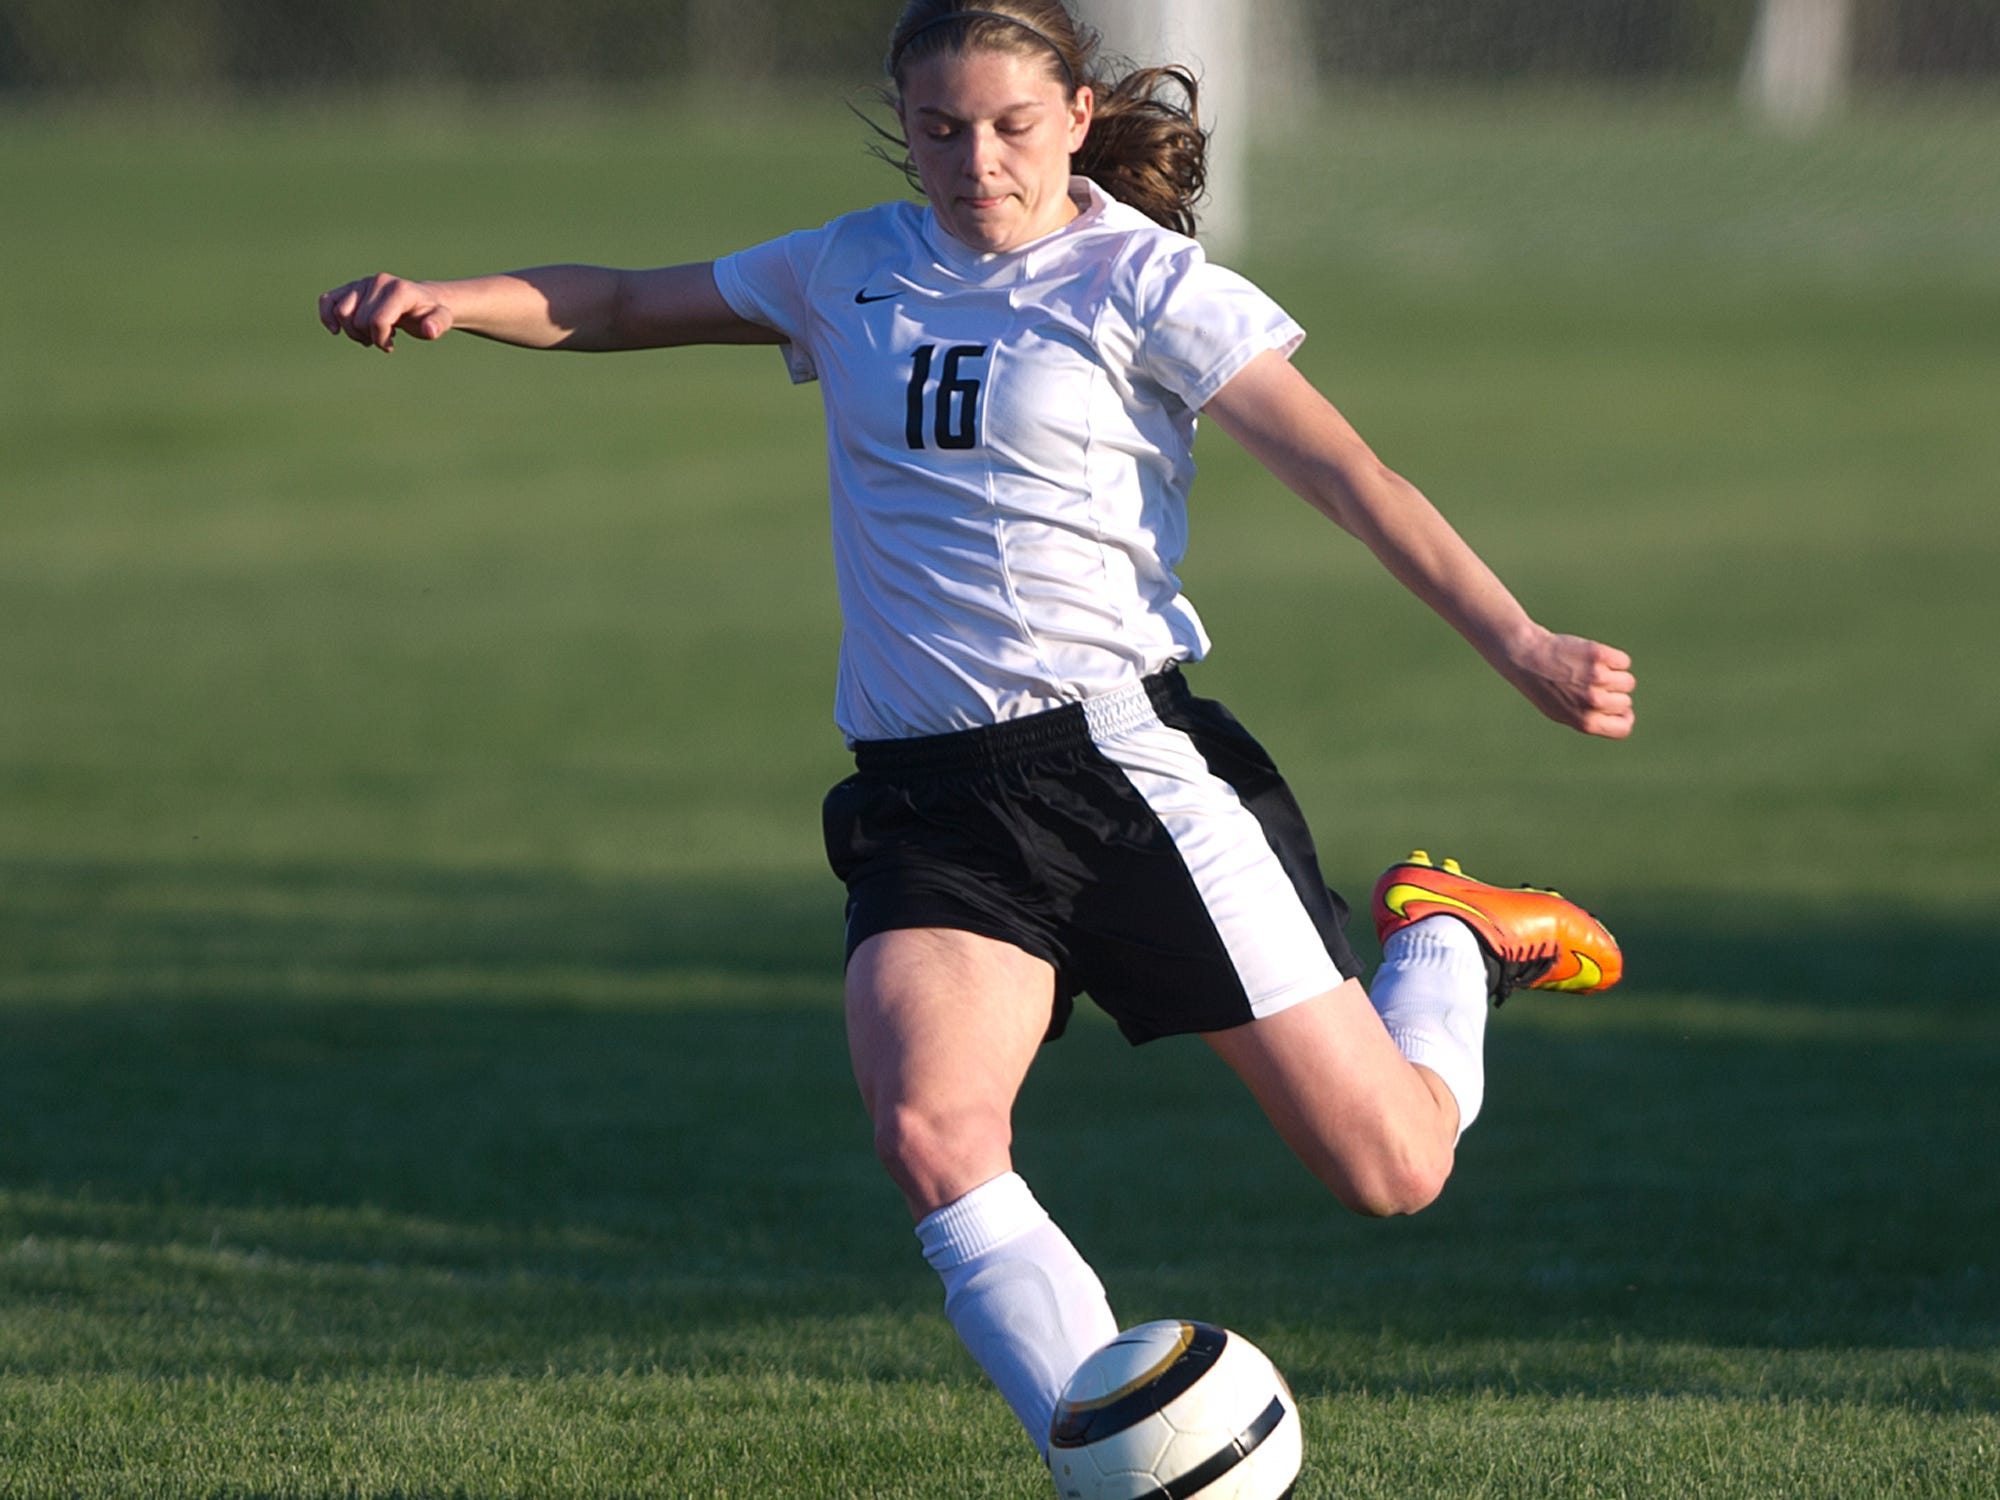 Stevens Point Area Senior High's Autum Shurbert-Hetzel strikes the ball Thursday during a Wisconsin Valley Conference soccer game against Wisconsin Rapids at the Portage County Youth Soccer Complex in Stevens Point.